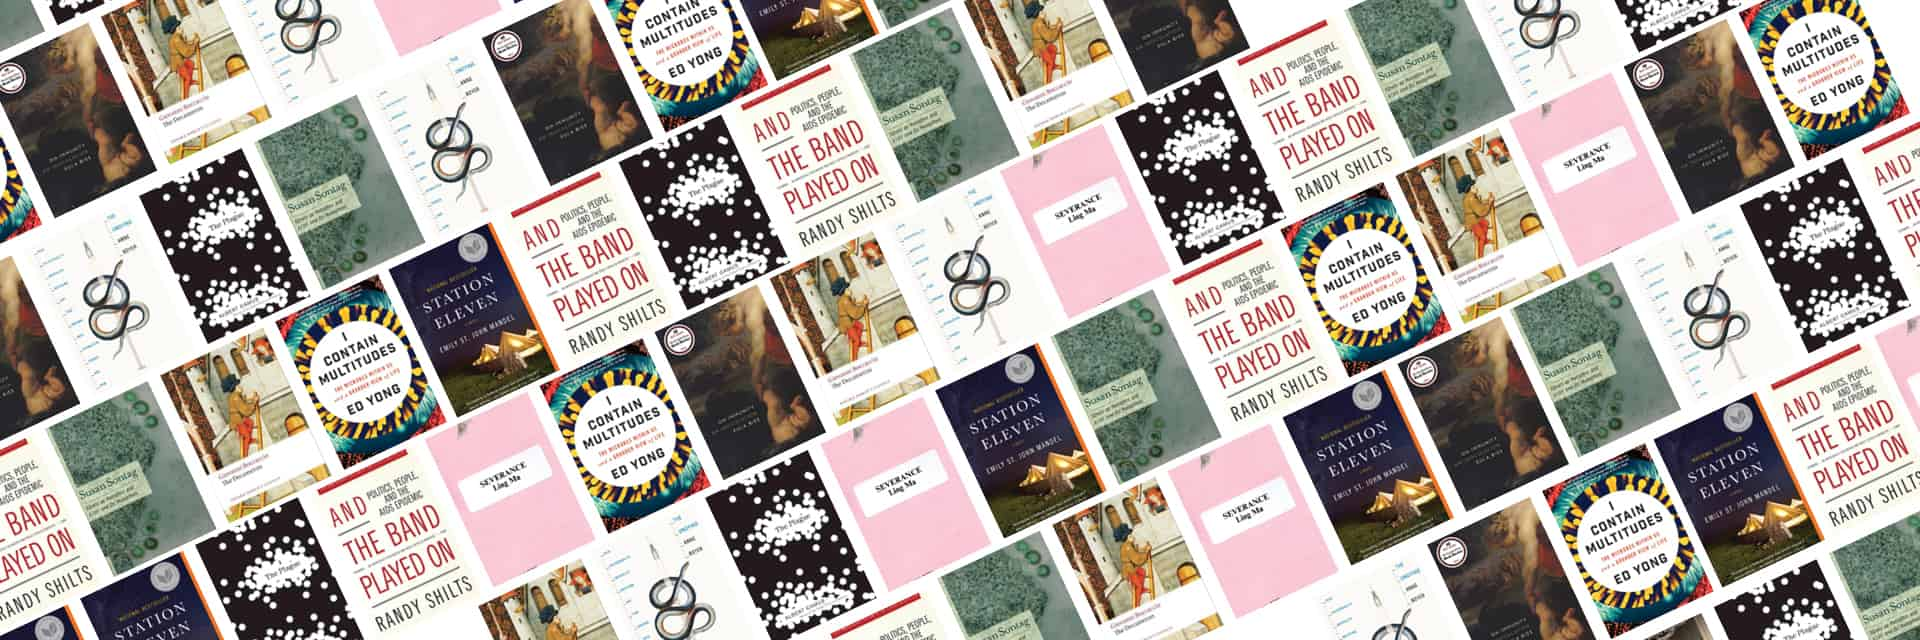 Literature in the Time of Coronavirus Book Covers